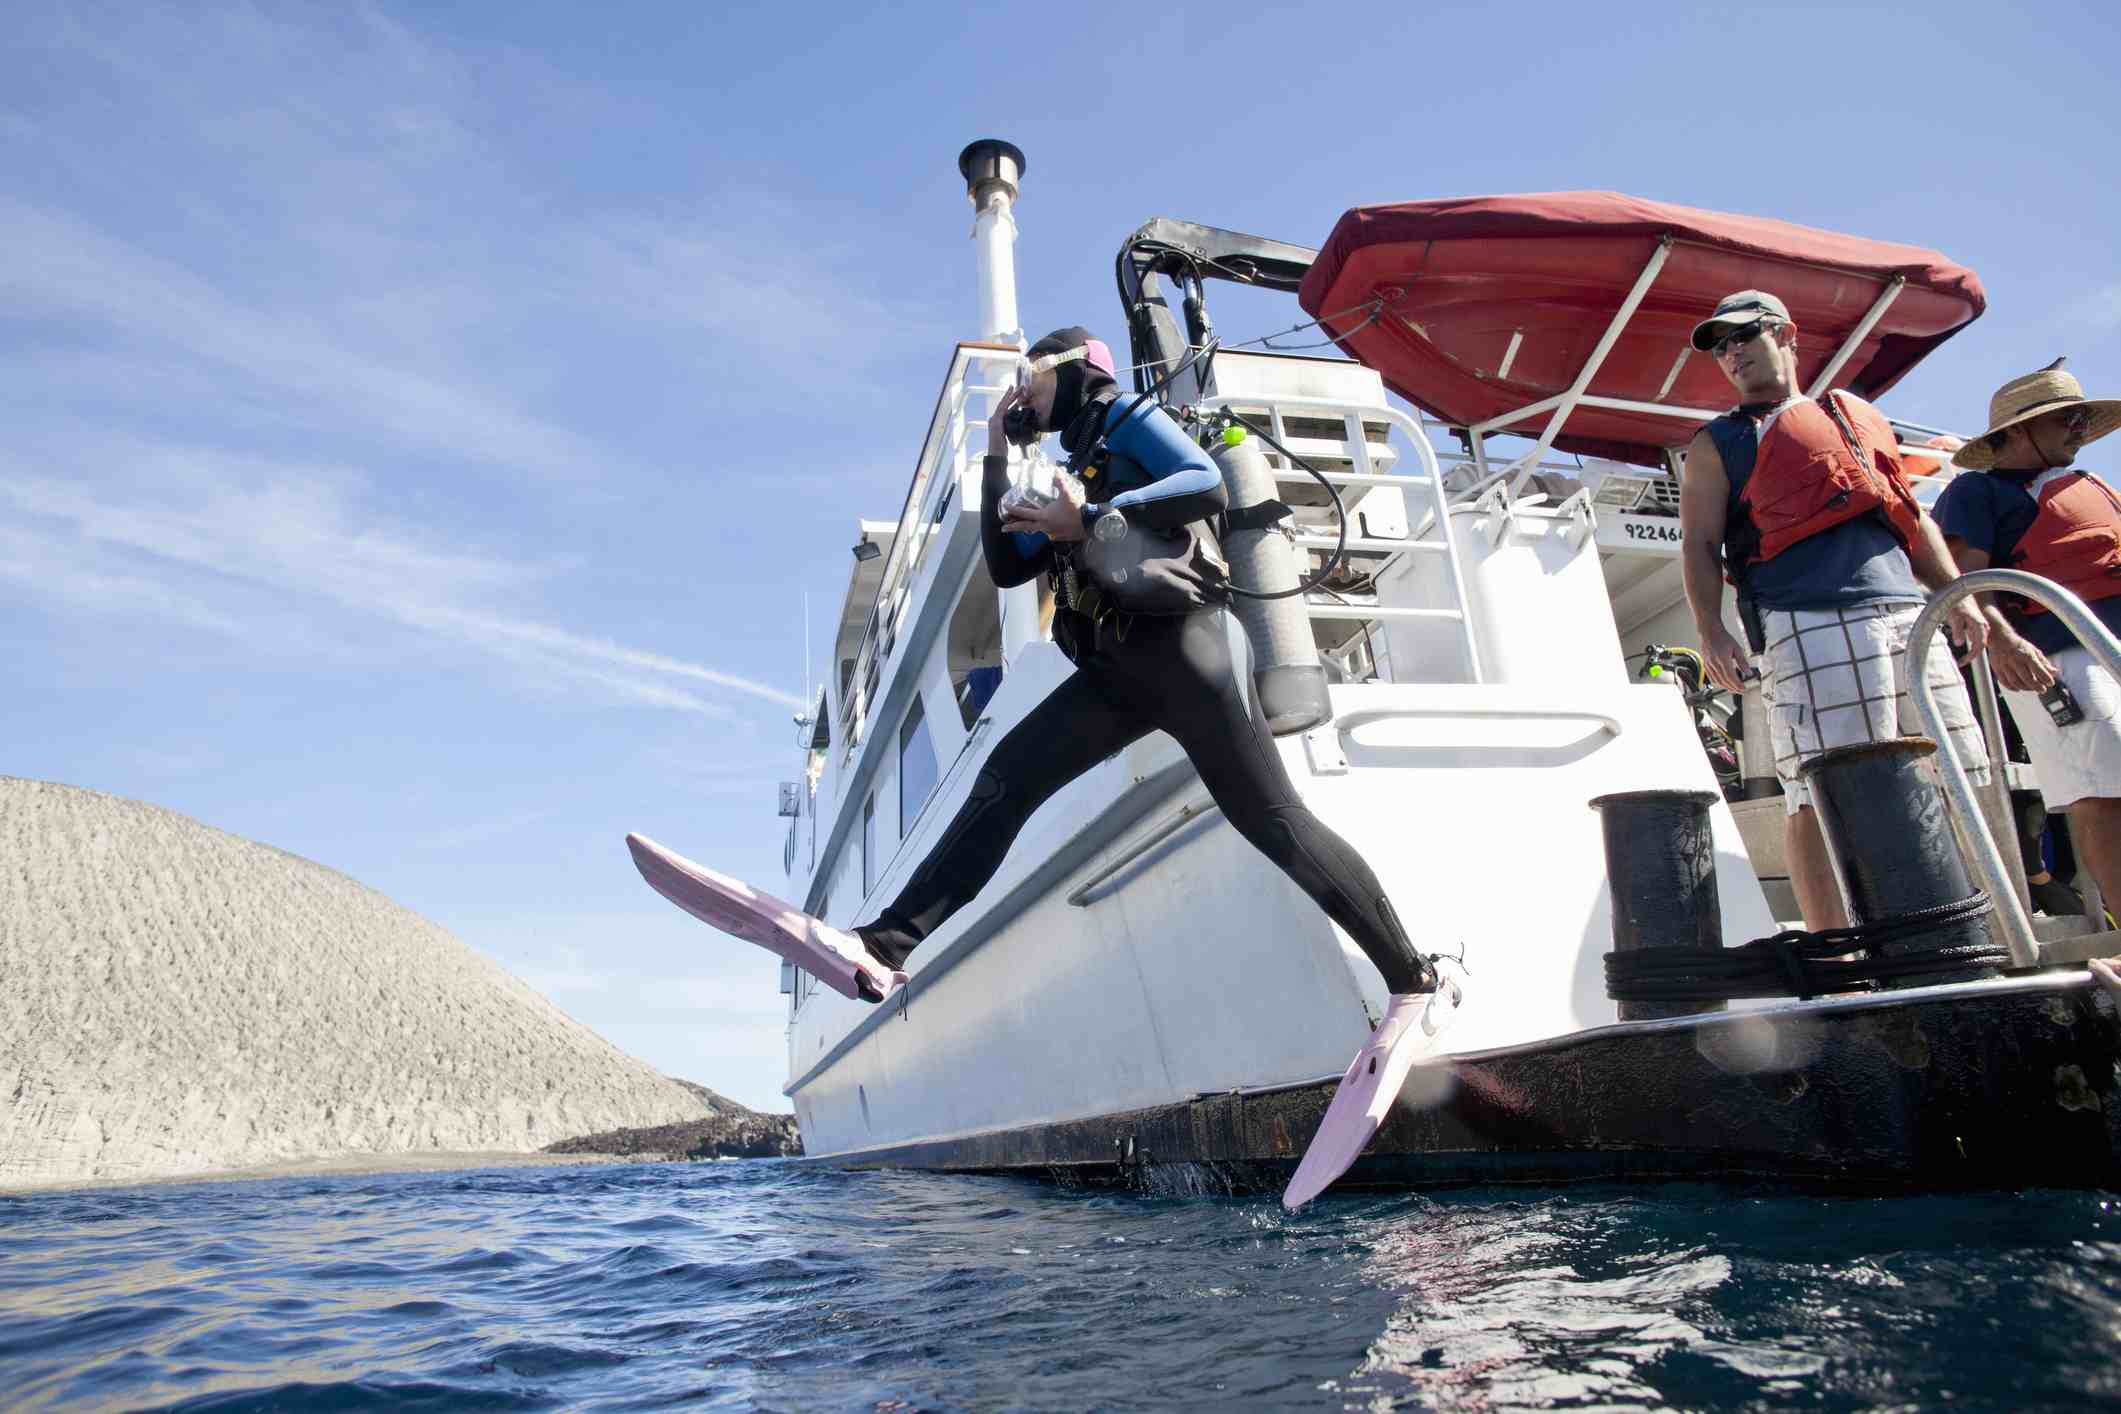 A scuba diver holding a camera in underwater housing jumps off the deck of a live aboard boat